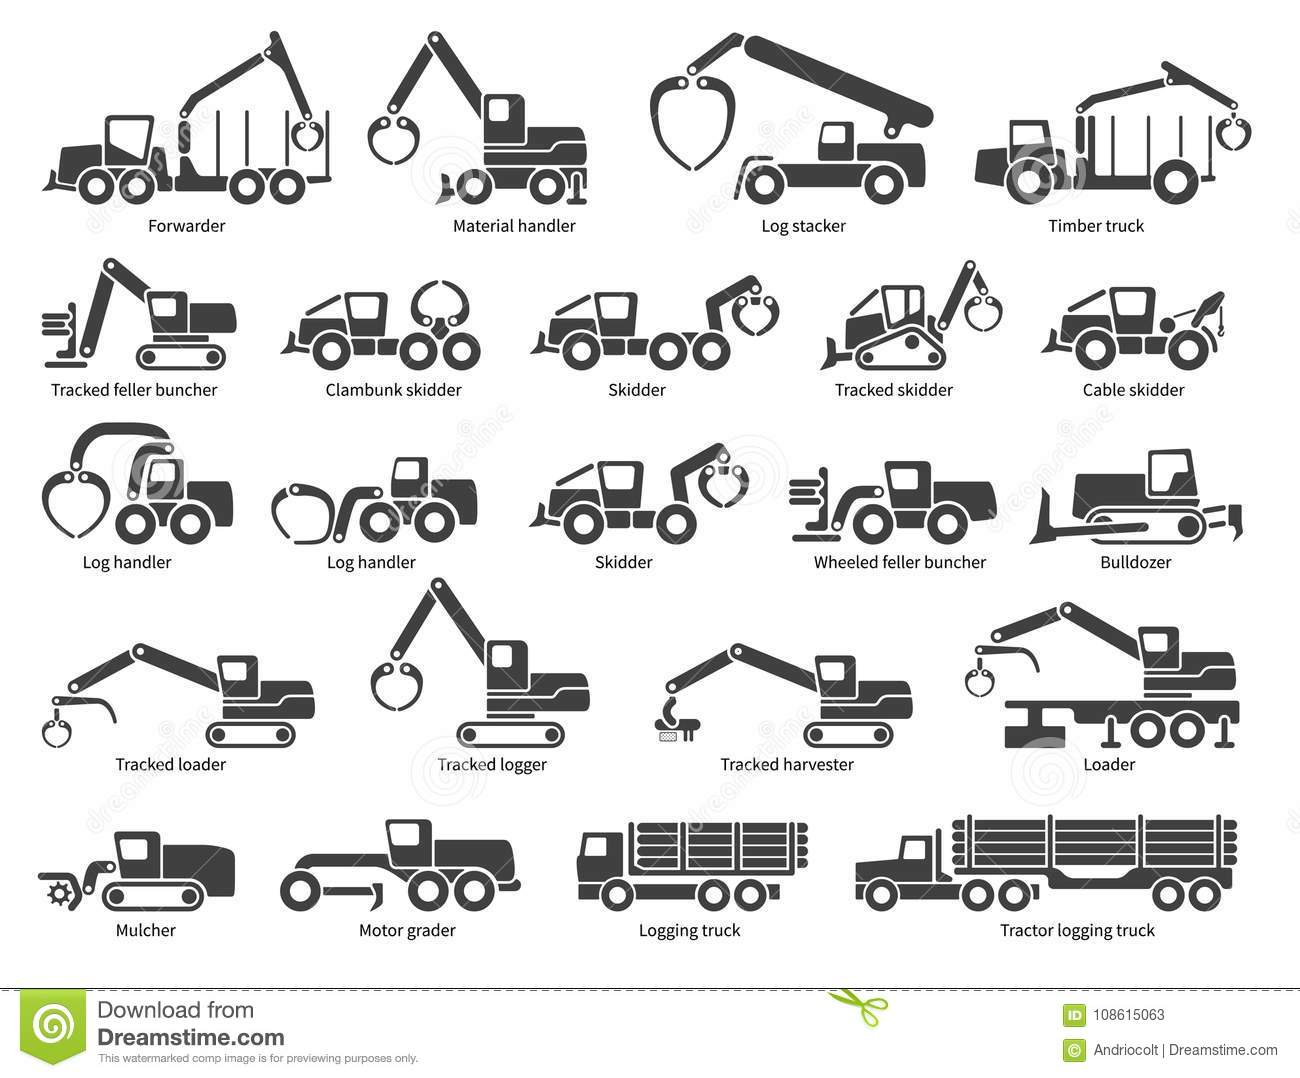 Forestry machinery vector icons set